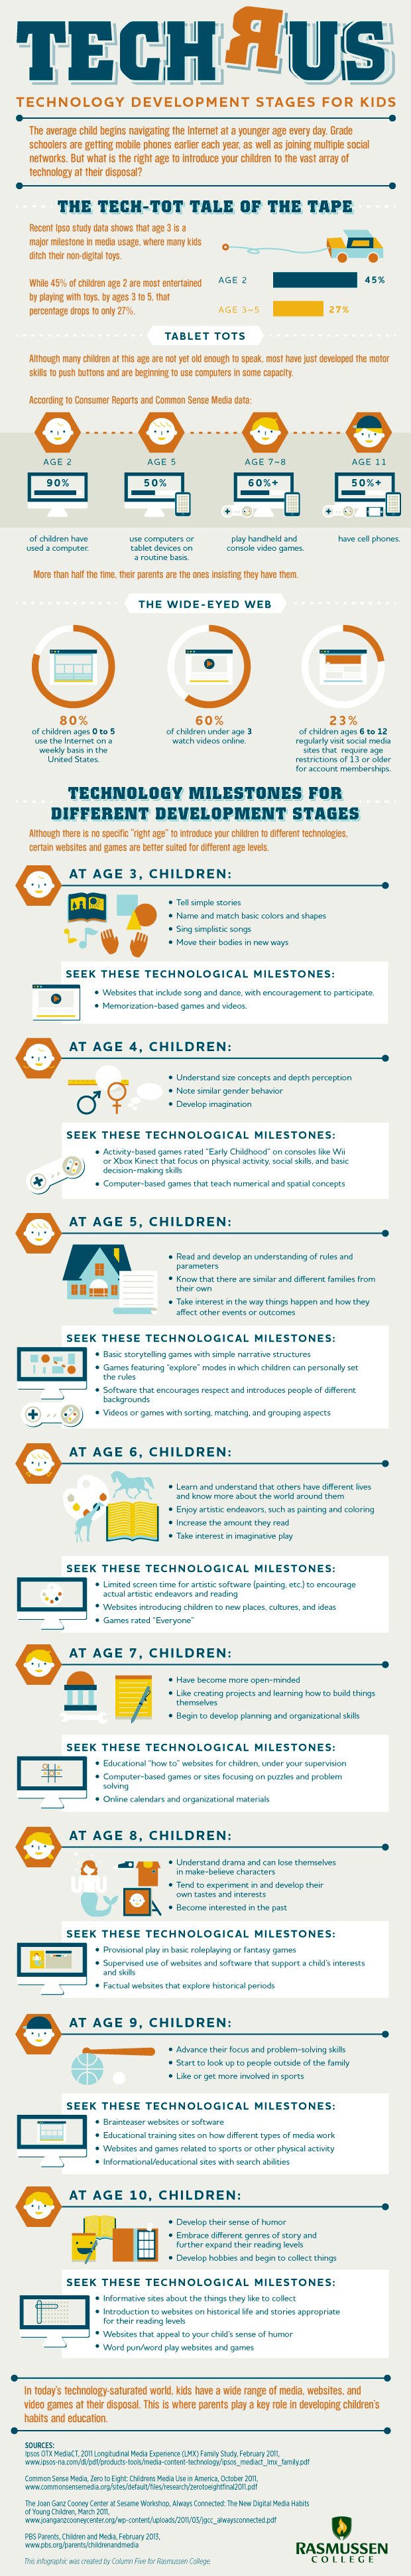 TECH R US - Technology Development Stages for Kids